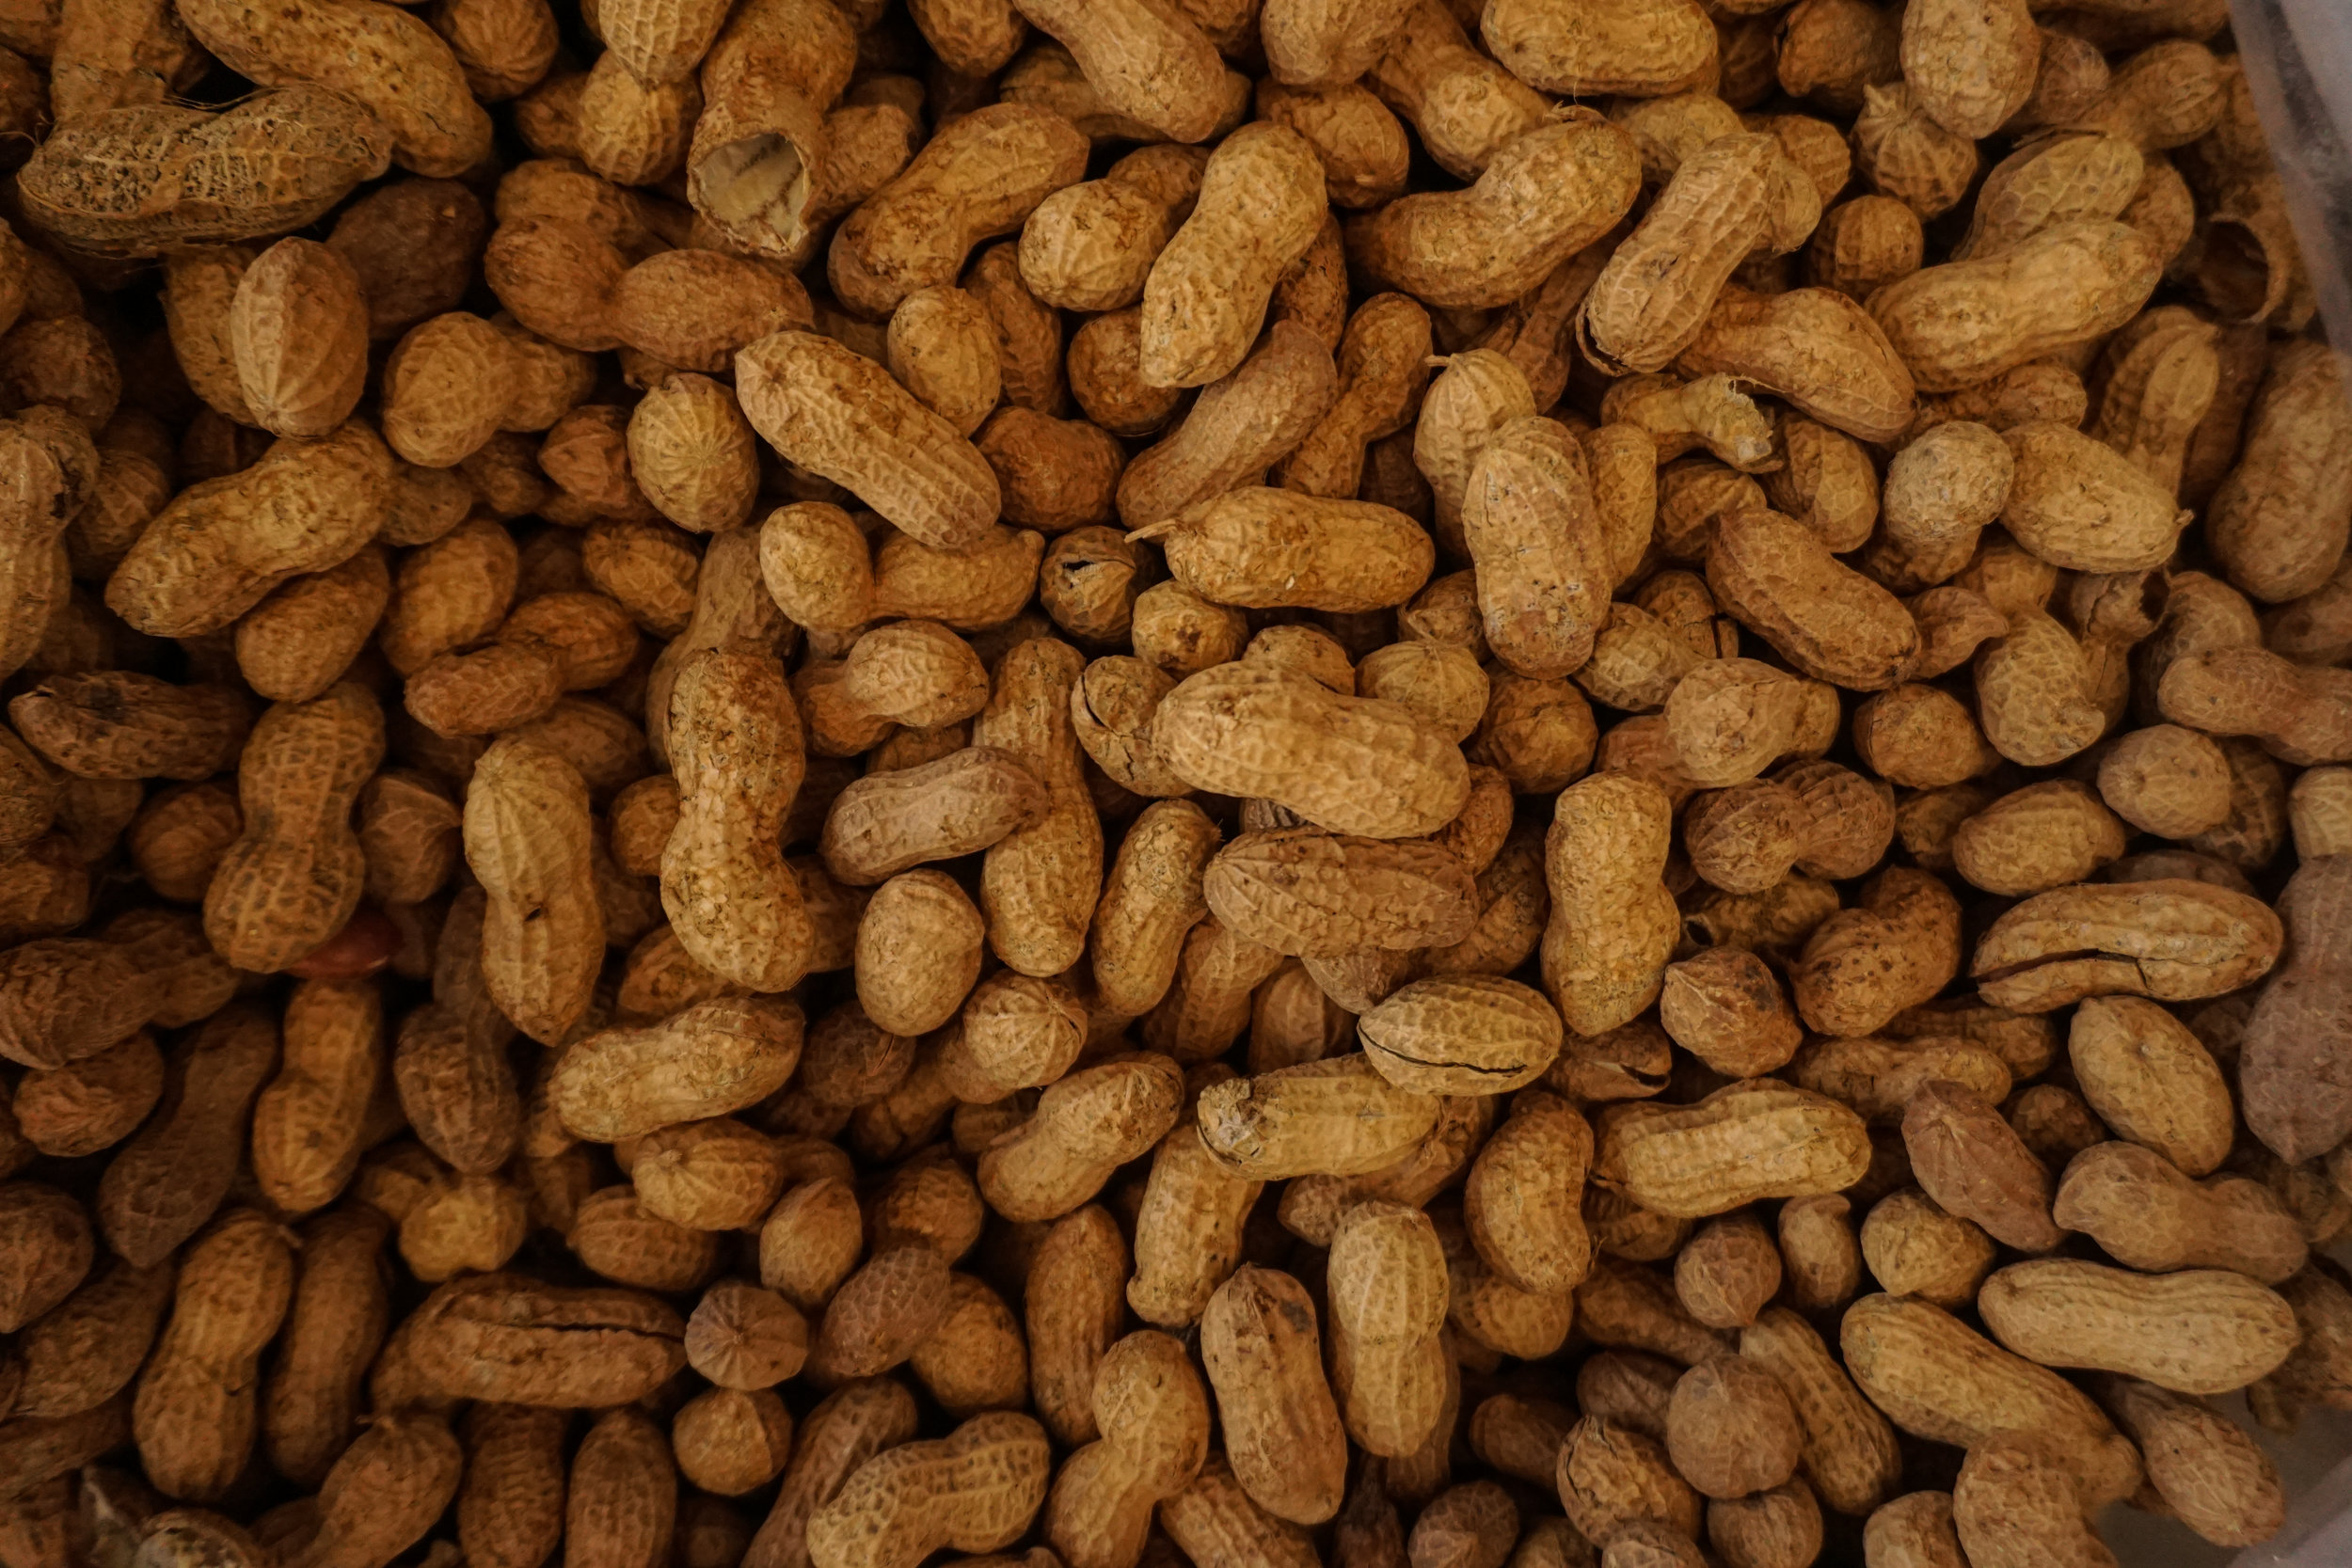 Peanuts - Peanuts are a high quality protein with healthy fats. Peanuts are low in carbs and one of the best forms of dietary biotin. Biotin plays an important role in fat and sugar metabolism. Peanuts are also as rich in antioxidants as many fruits. The key is to eat the peanuts raw as a majority of the antioxidants are found in the peanut skin.